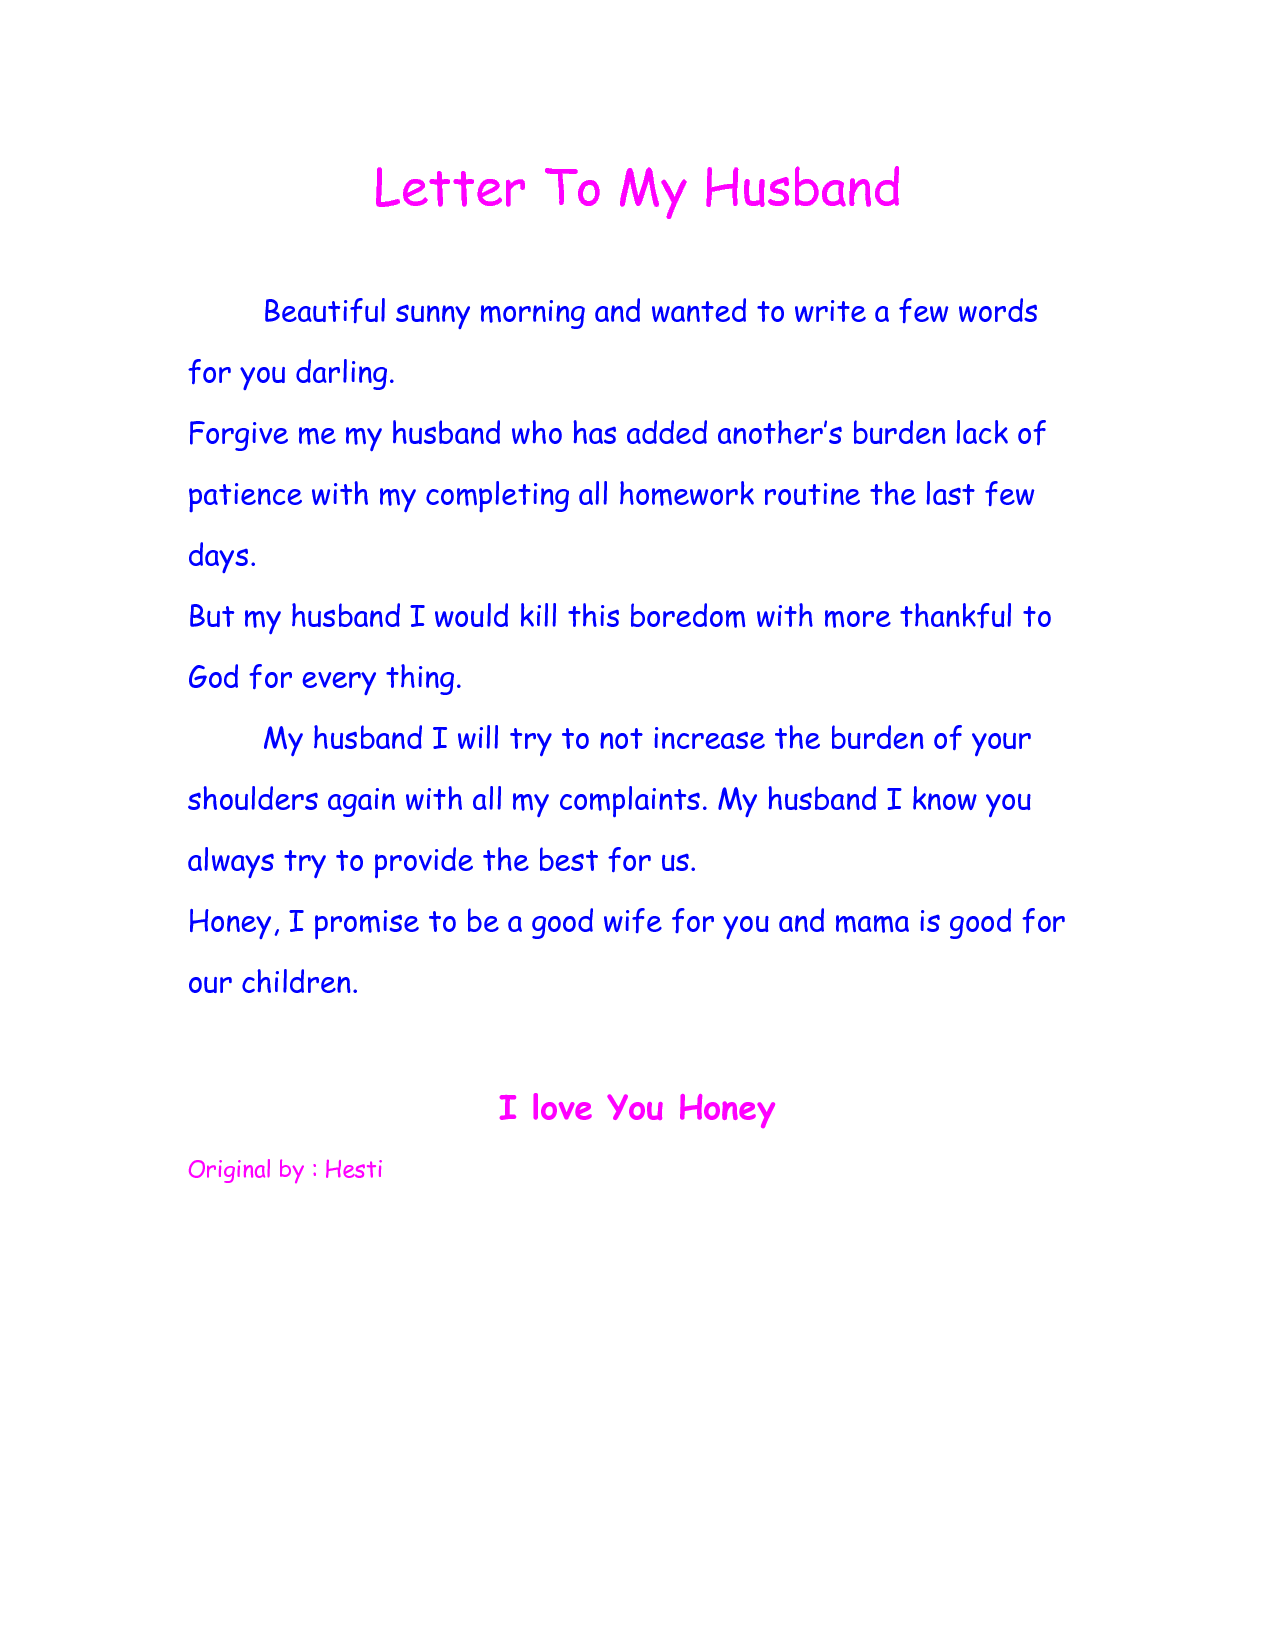 Loving Words to My Husband